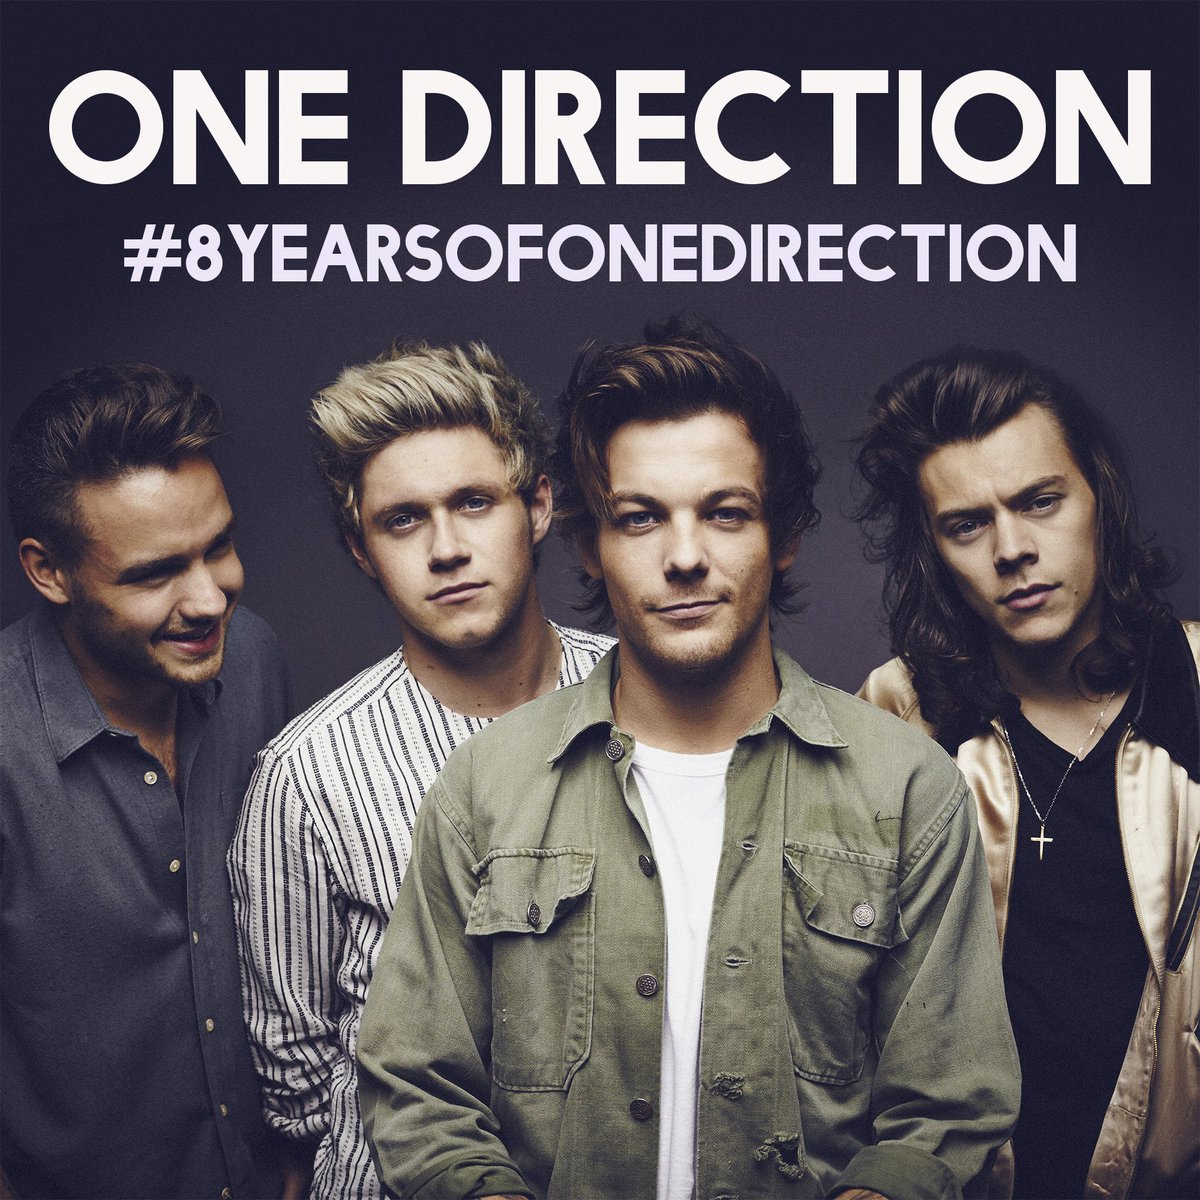 A whole lotta history... this Monday is an important anniversary for the guys, it's been #8YearsofOneDirection To celebrate, its time to relive all the hits this weekend by streaming the official playlist and tweeting which tracks you are listening to smarturl.it/1DOfficialPlay…